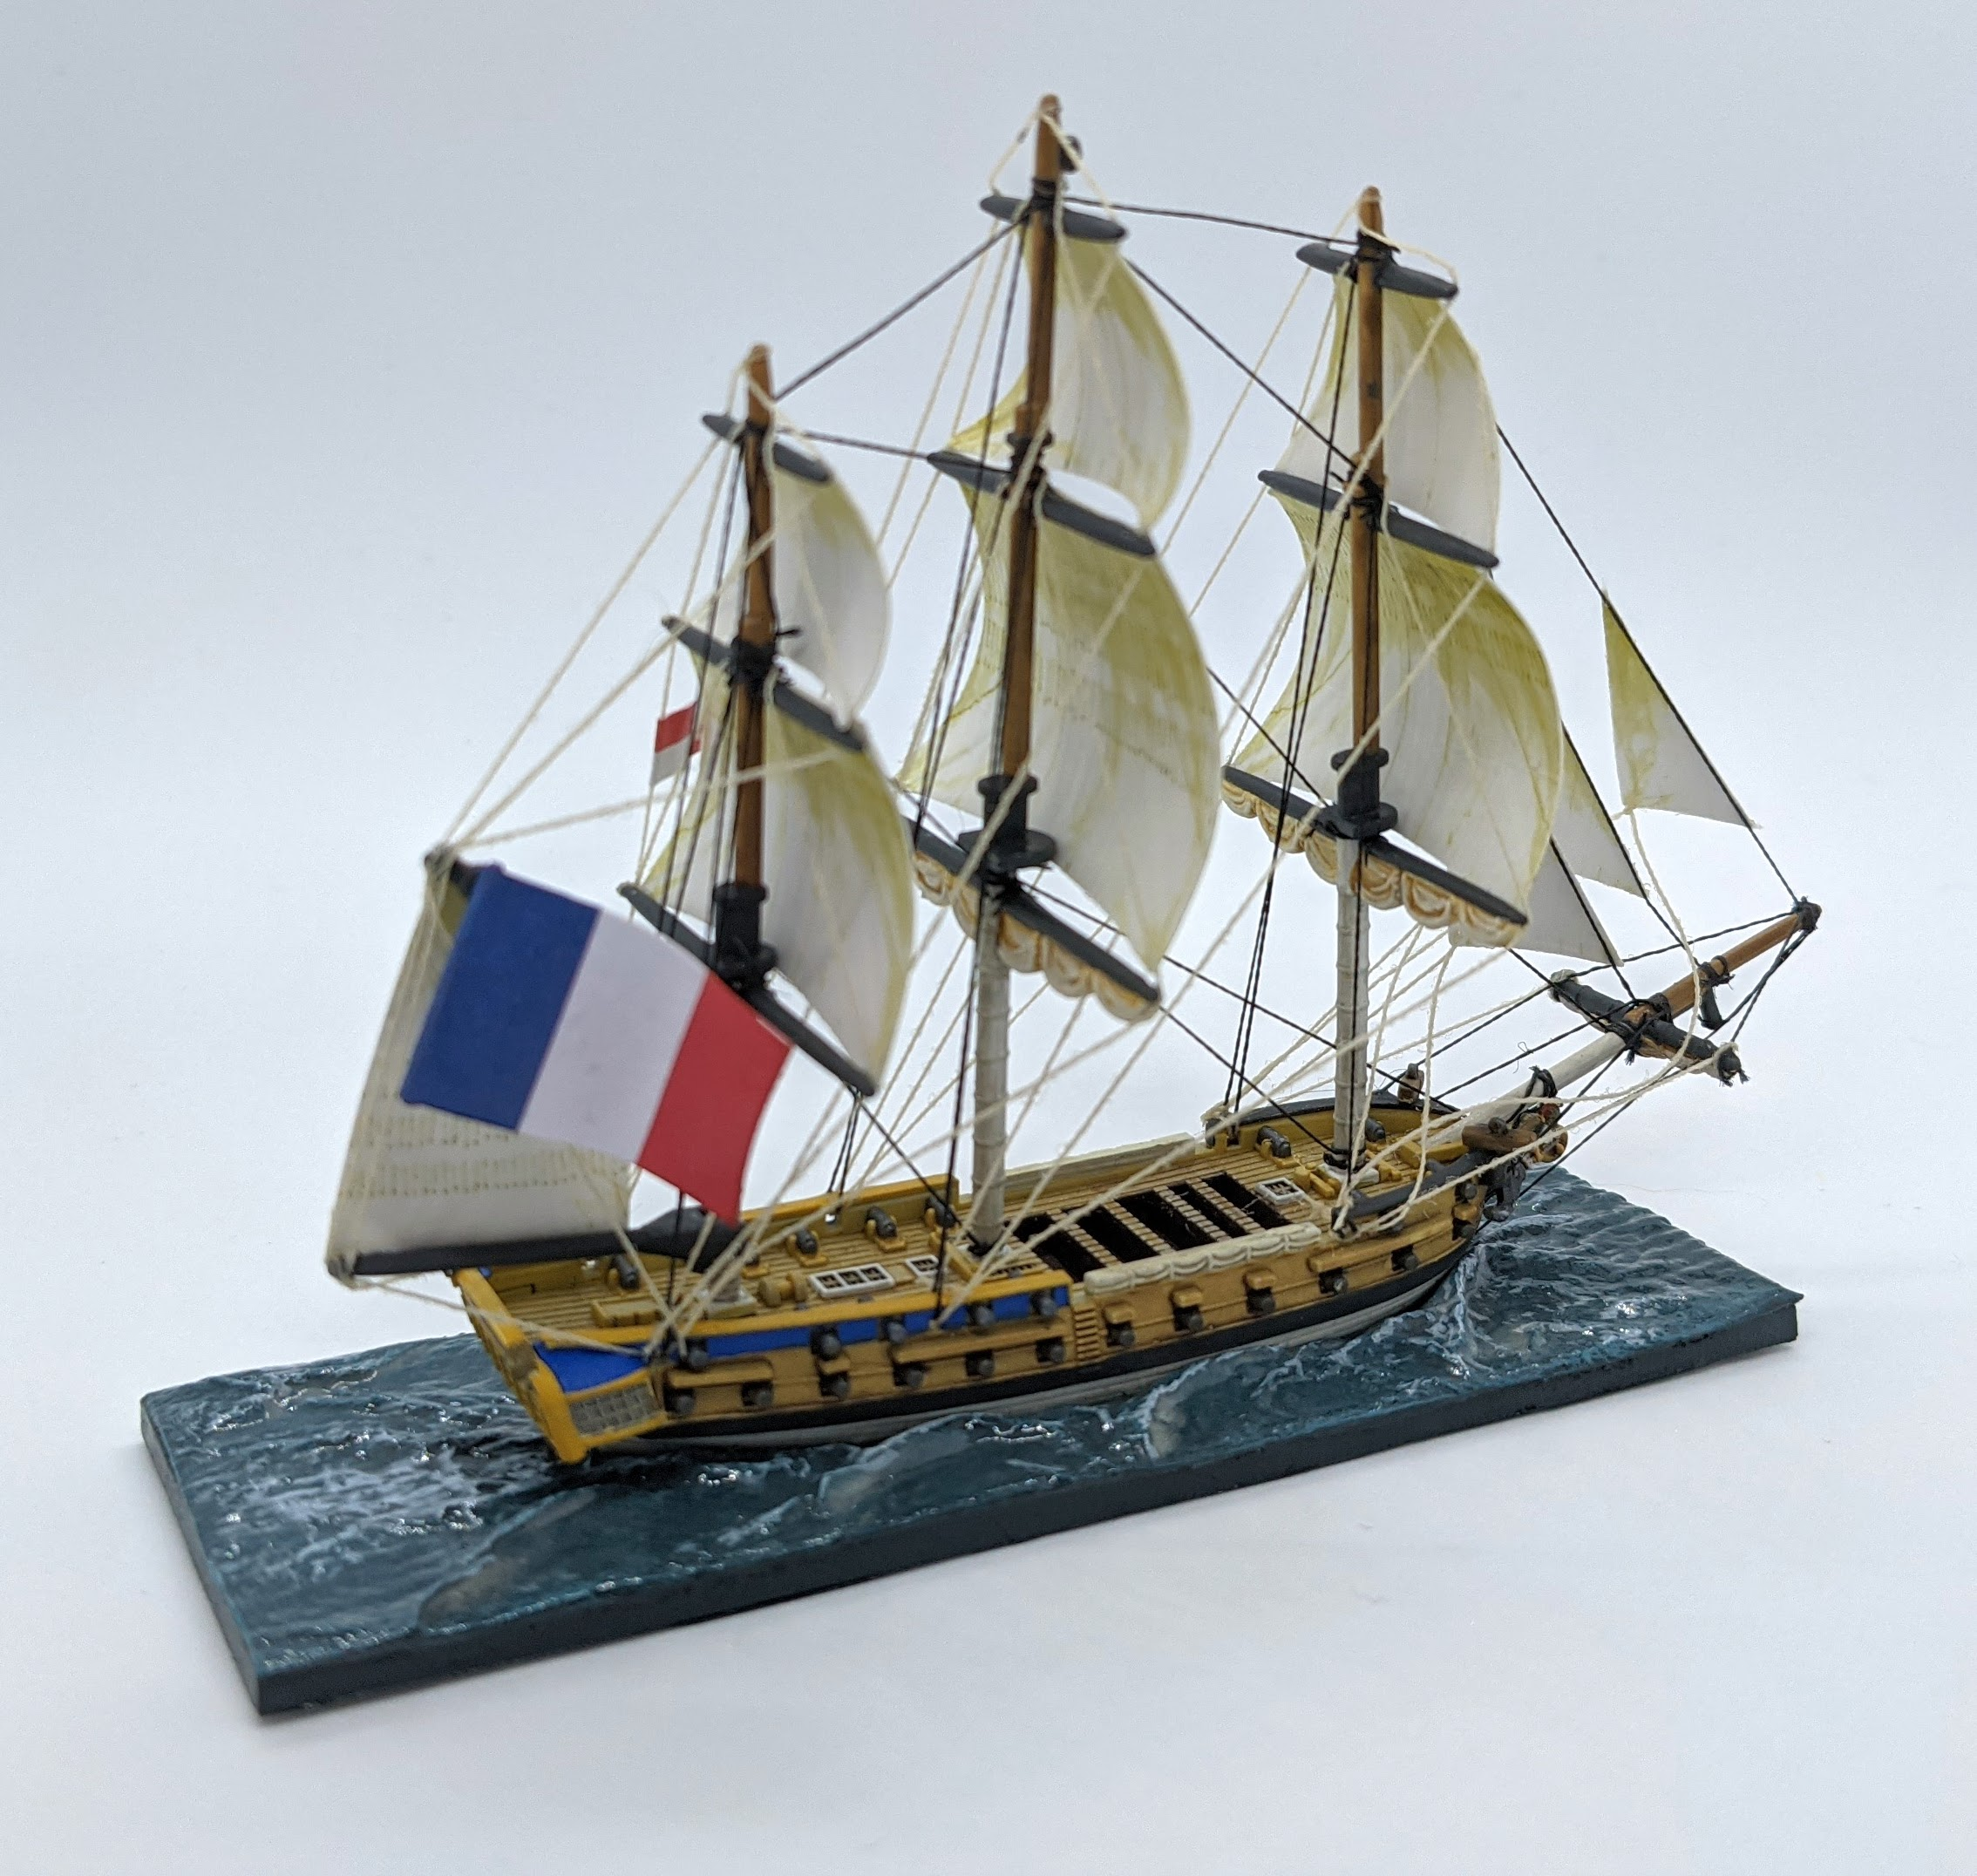 Napoleonic French Flag on a frigate model. The smaller signal flag (used to match the model with the ship card) is permanently attached to the model.